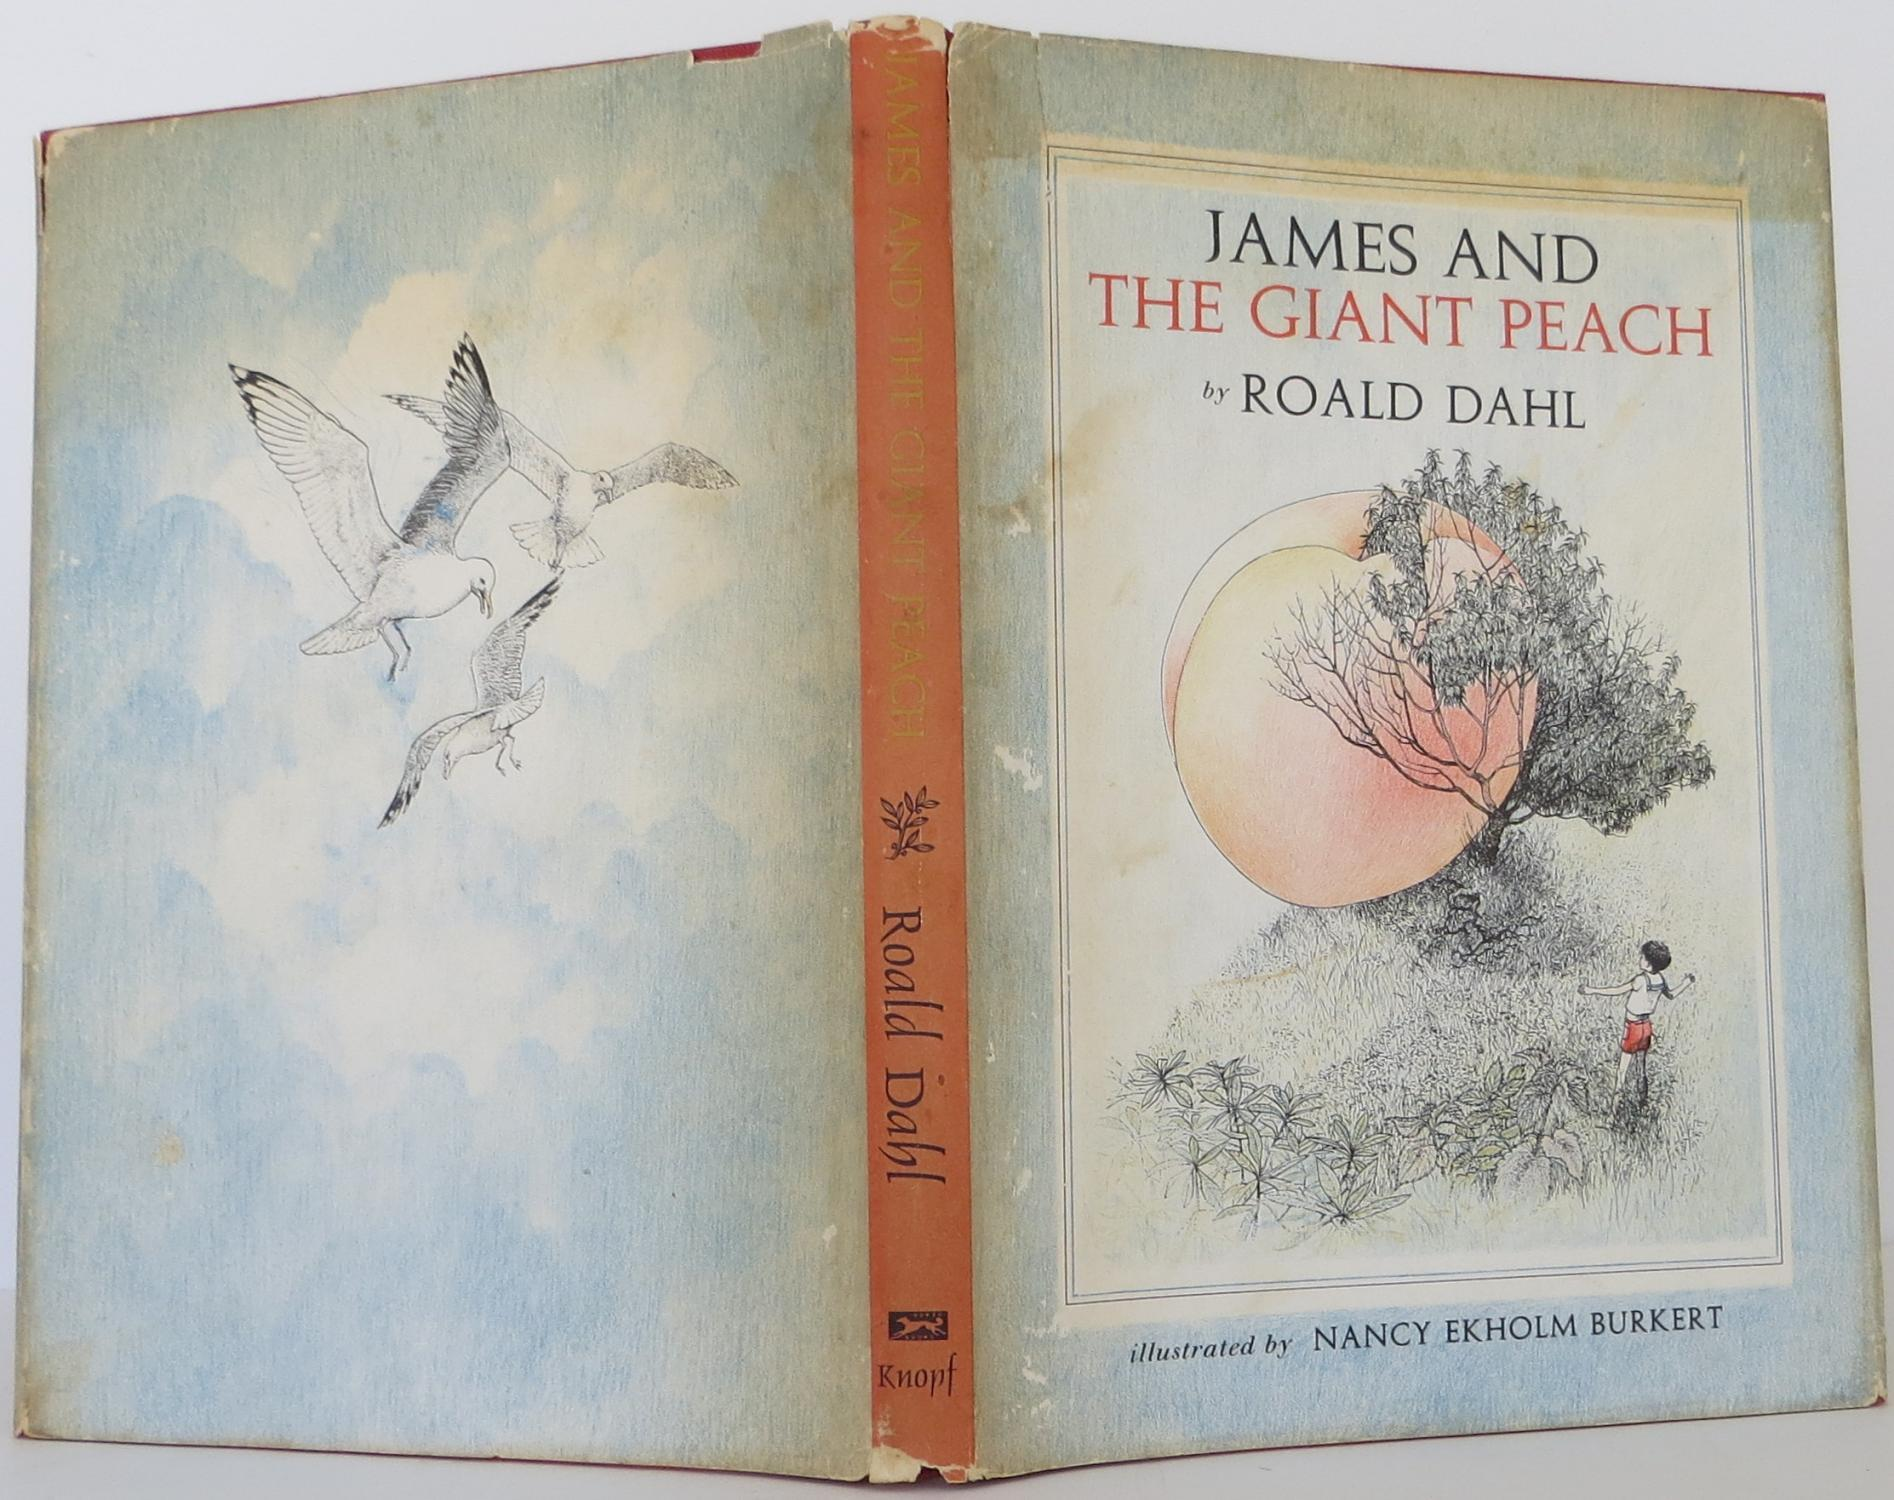 James And The Giant Peach By Dahl Roald Knopf Hardcover 1st Edition Signed By Author S